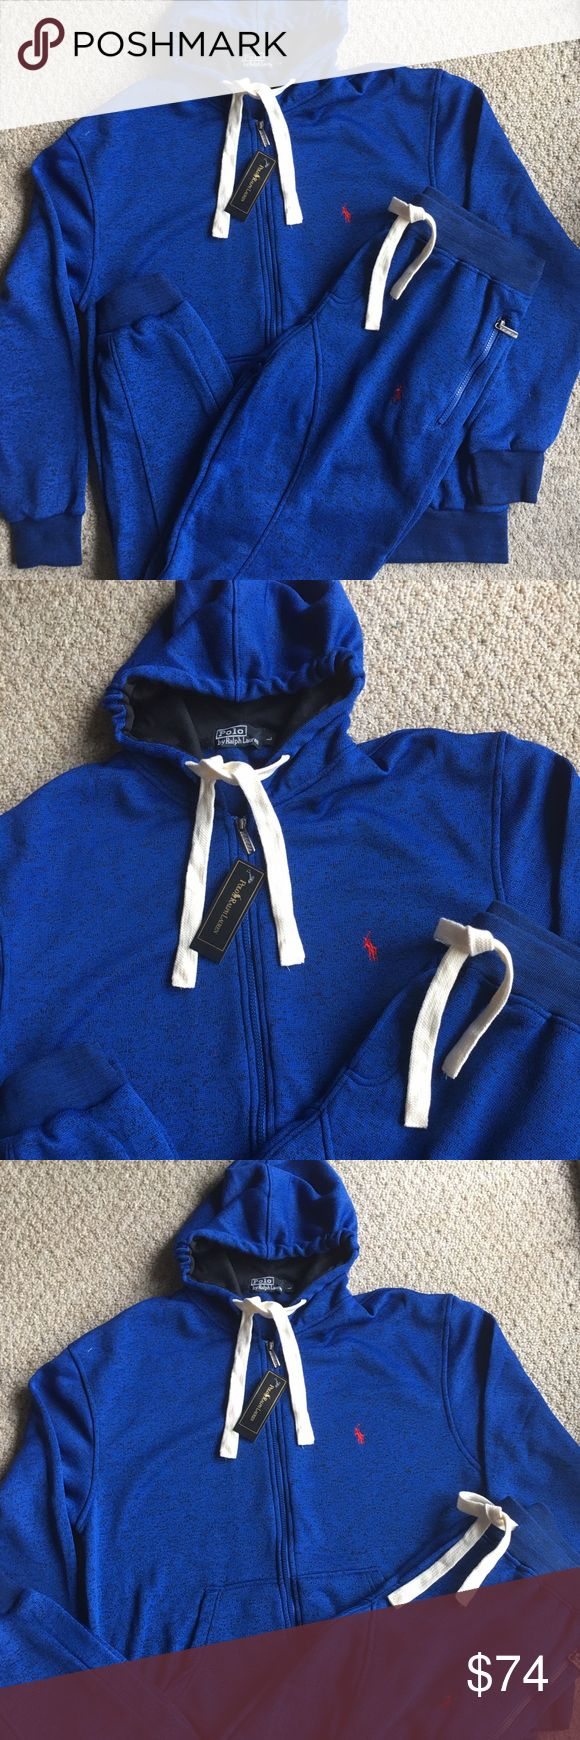 New Men's Ralph Lauren Polo Hoodie Sweatpants Set Brand new with tags. Blue with Red polo stitch. Elastic fitted Joggers with Zipped Hoodie. Great deal! Polo by Ralph Lauren Shirts Sweatshirts & Hoodies